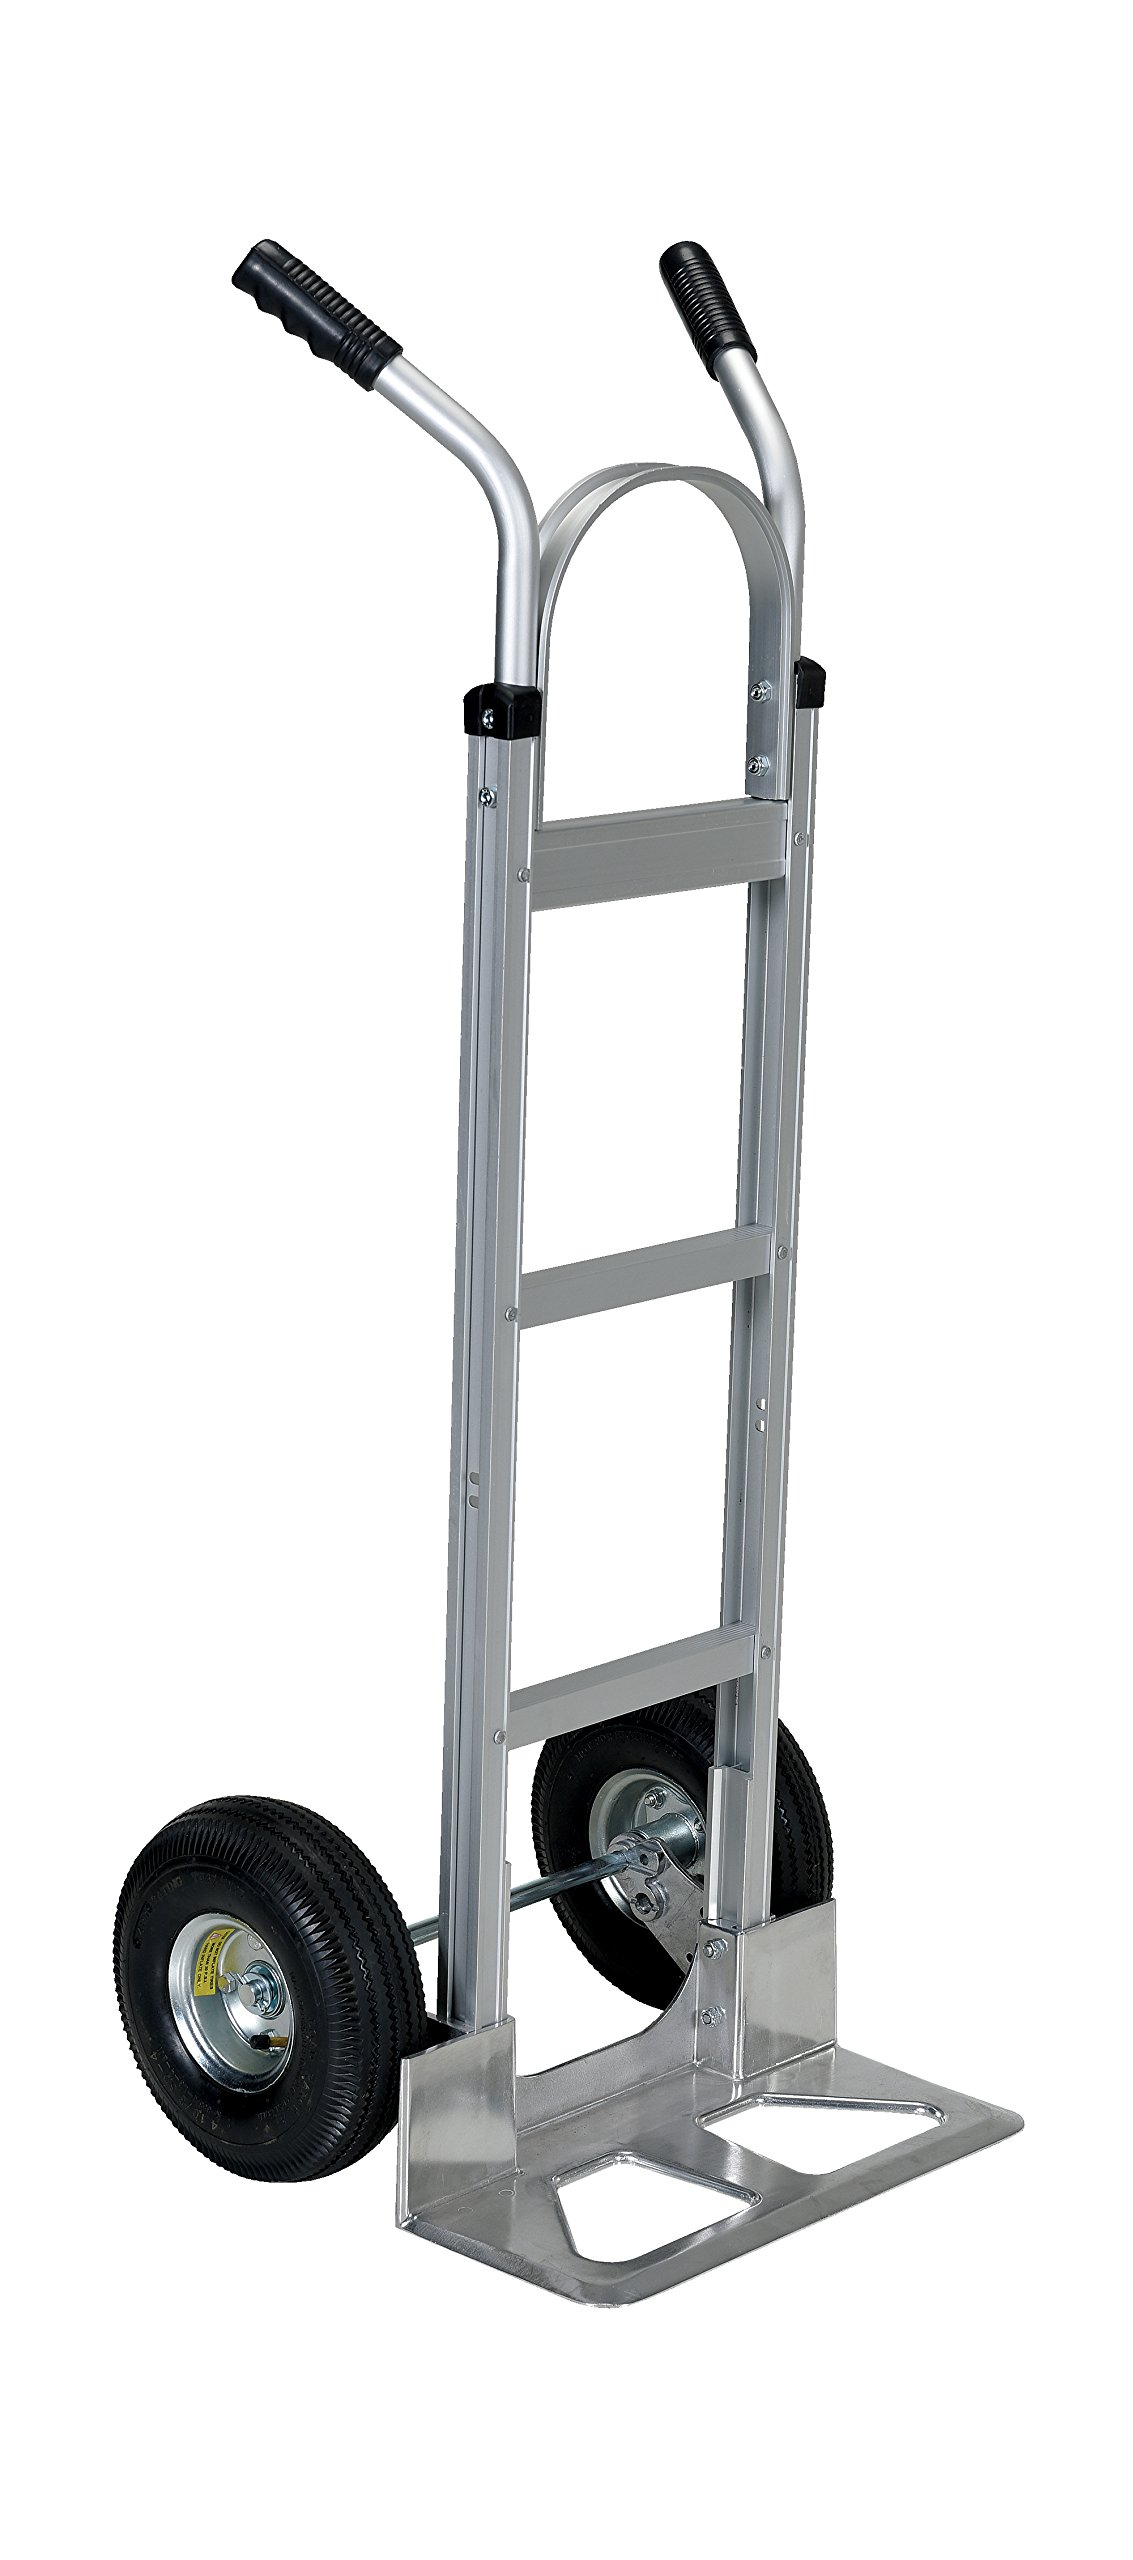 Vestil DHHT-500A-ANP Aluminum Hand Truck with Dual Handle, Pneumatic Wheels, 300 lbs Load Capacity, 50'' Height, 20-1/2'' Width X 19'' Depth